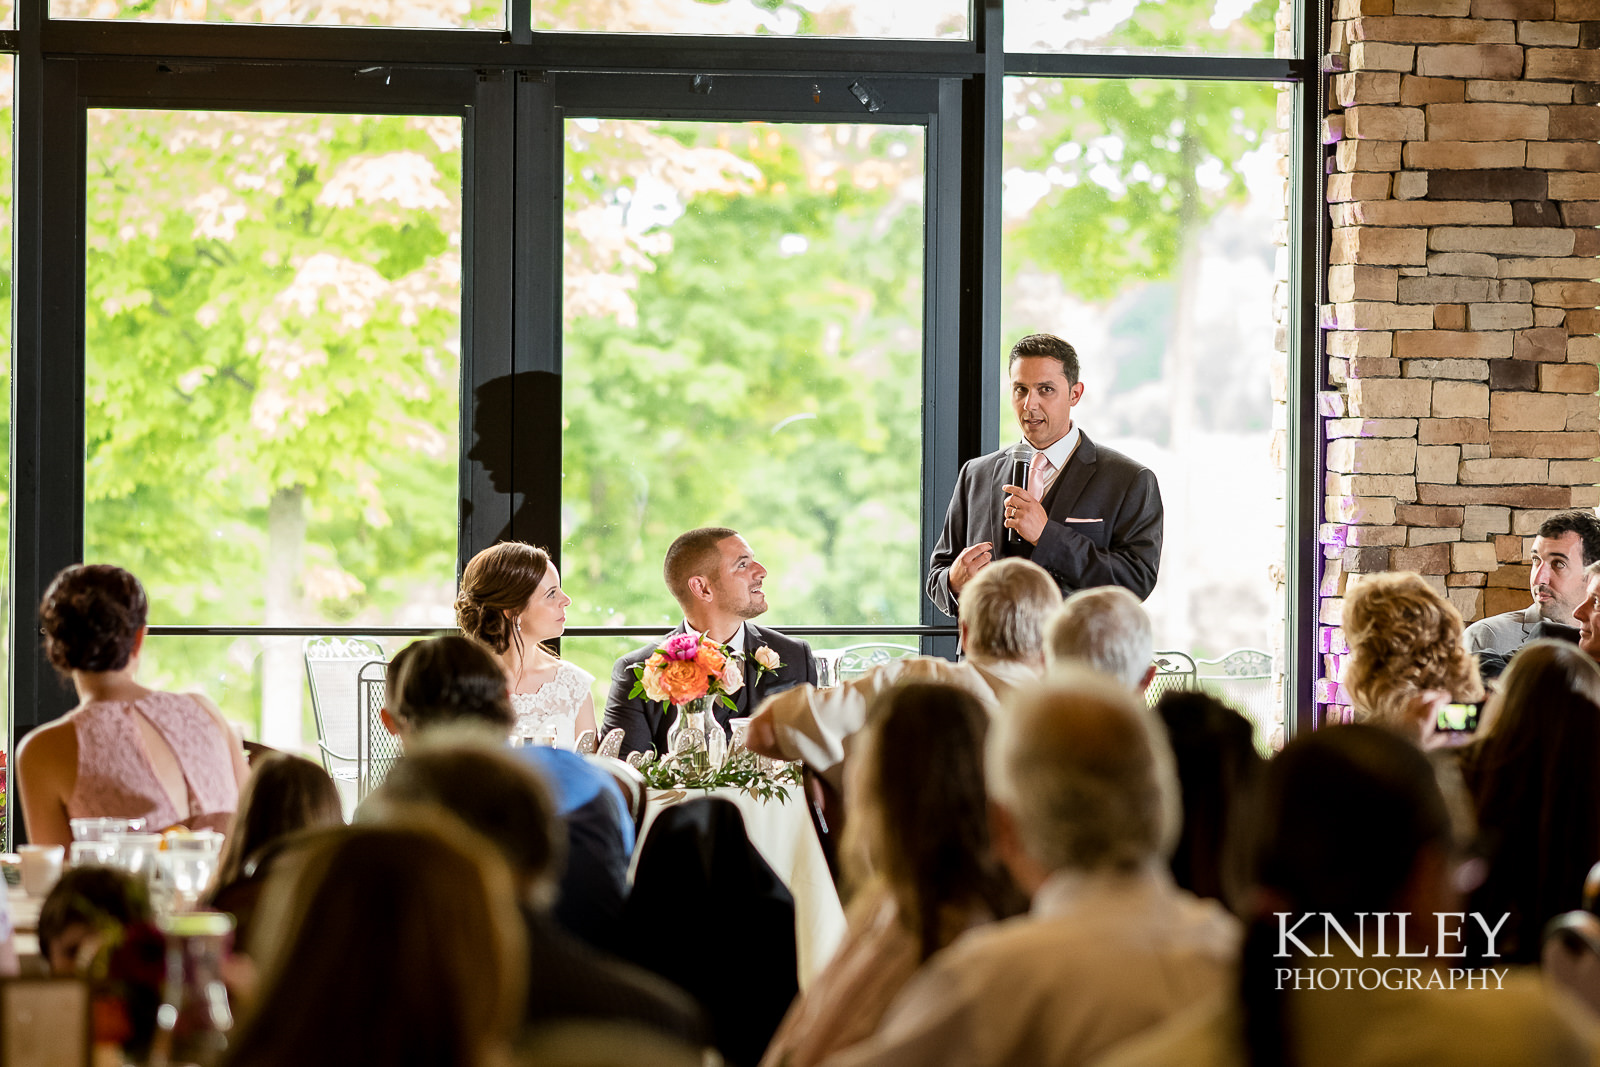 087 - Ravenwood Golf Club wedding pictures - Rochester NY - Kniley Photography - XT2A1187.jpg